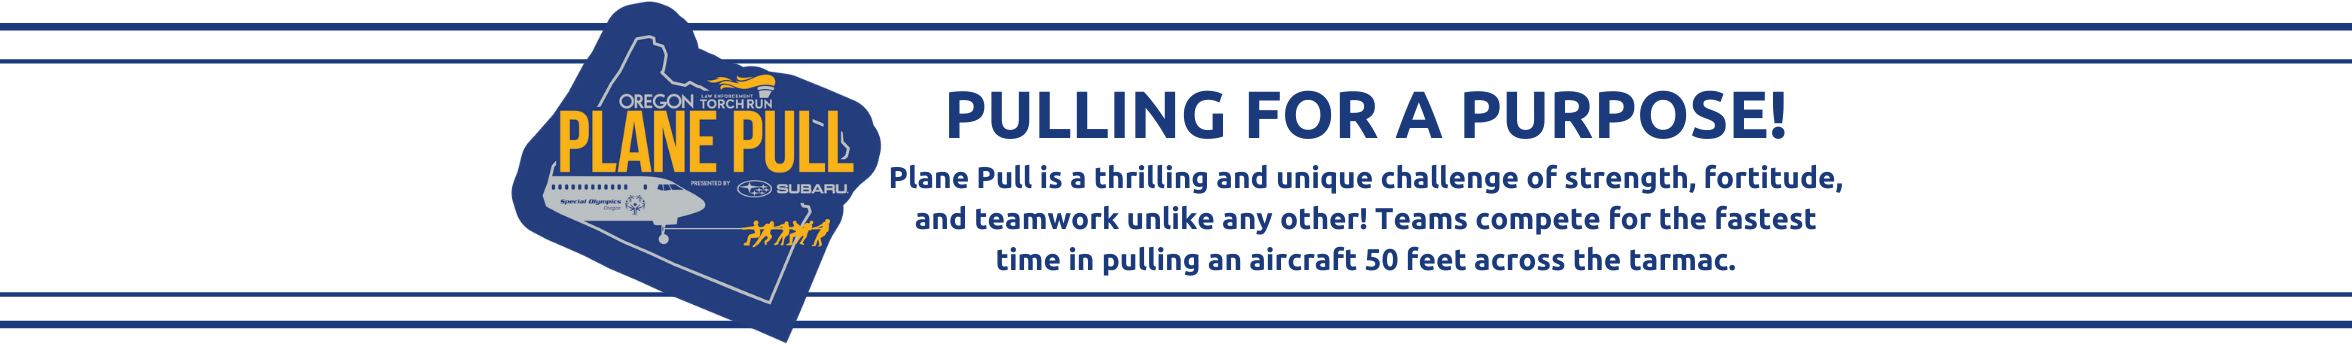 Plane Pull Website Banners